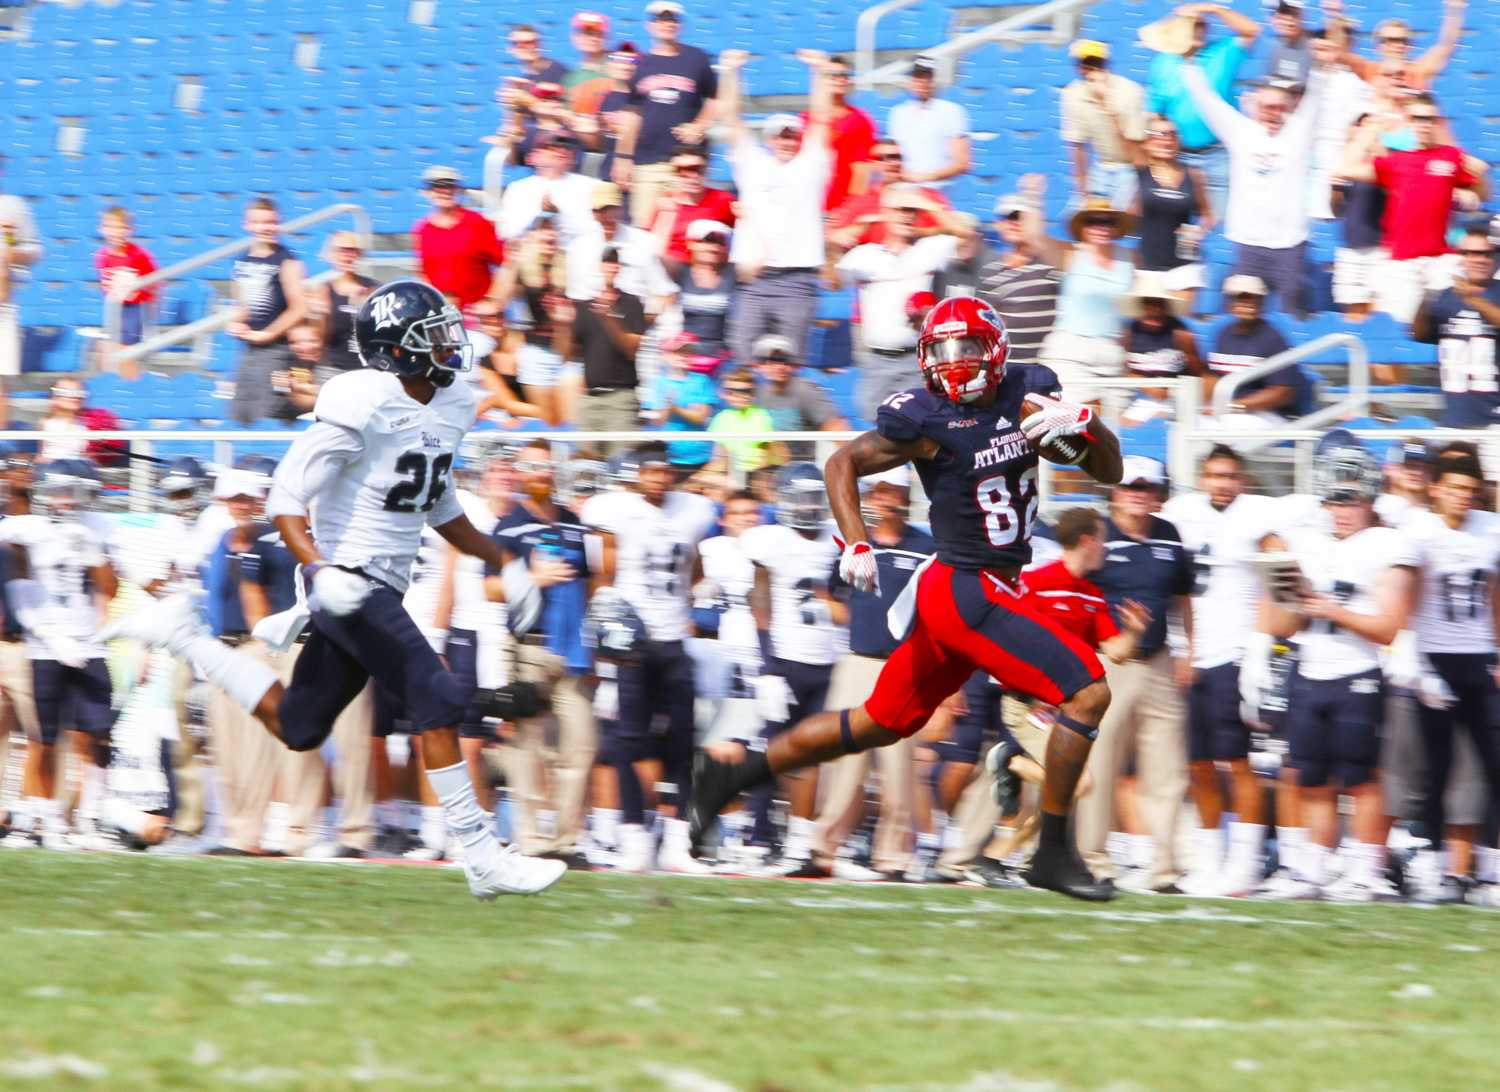 After a drawn-out stride across the field, FAU sophomore wide receiver Kamrin Solomon (82) goes for a touchdown before the end of the second quarter. Jessica Wilkerson | Contributing Photographer